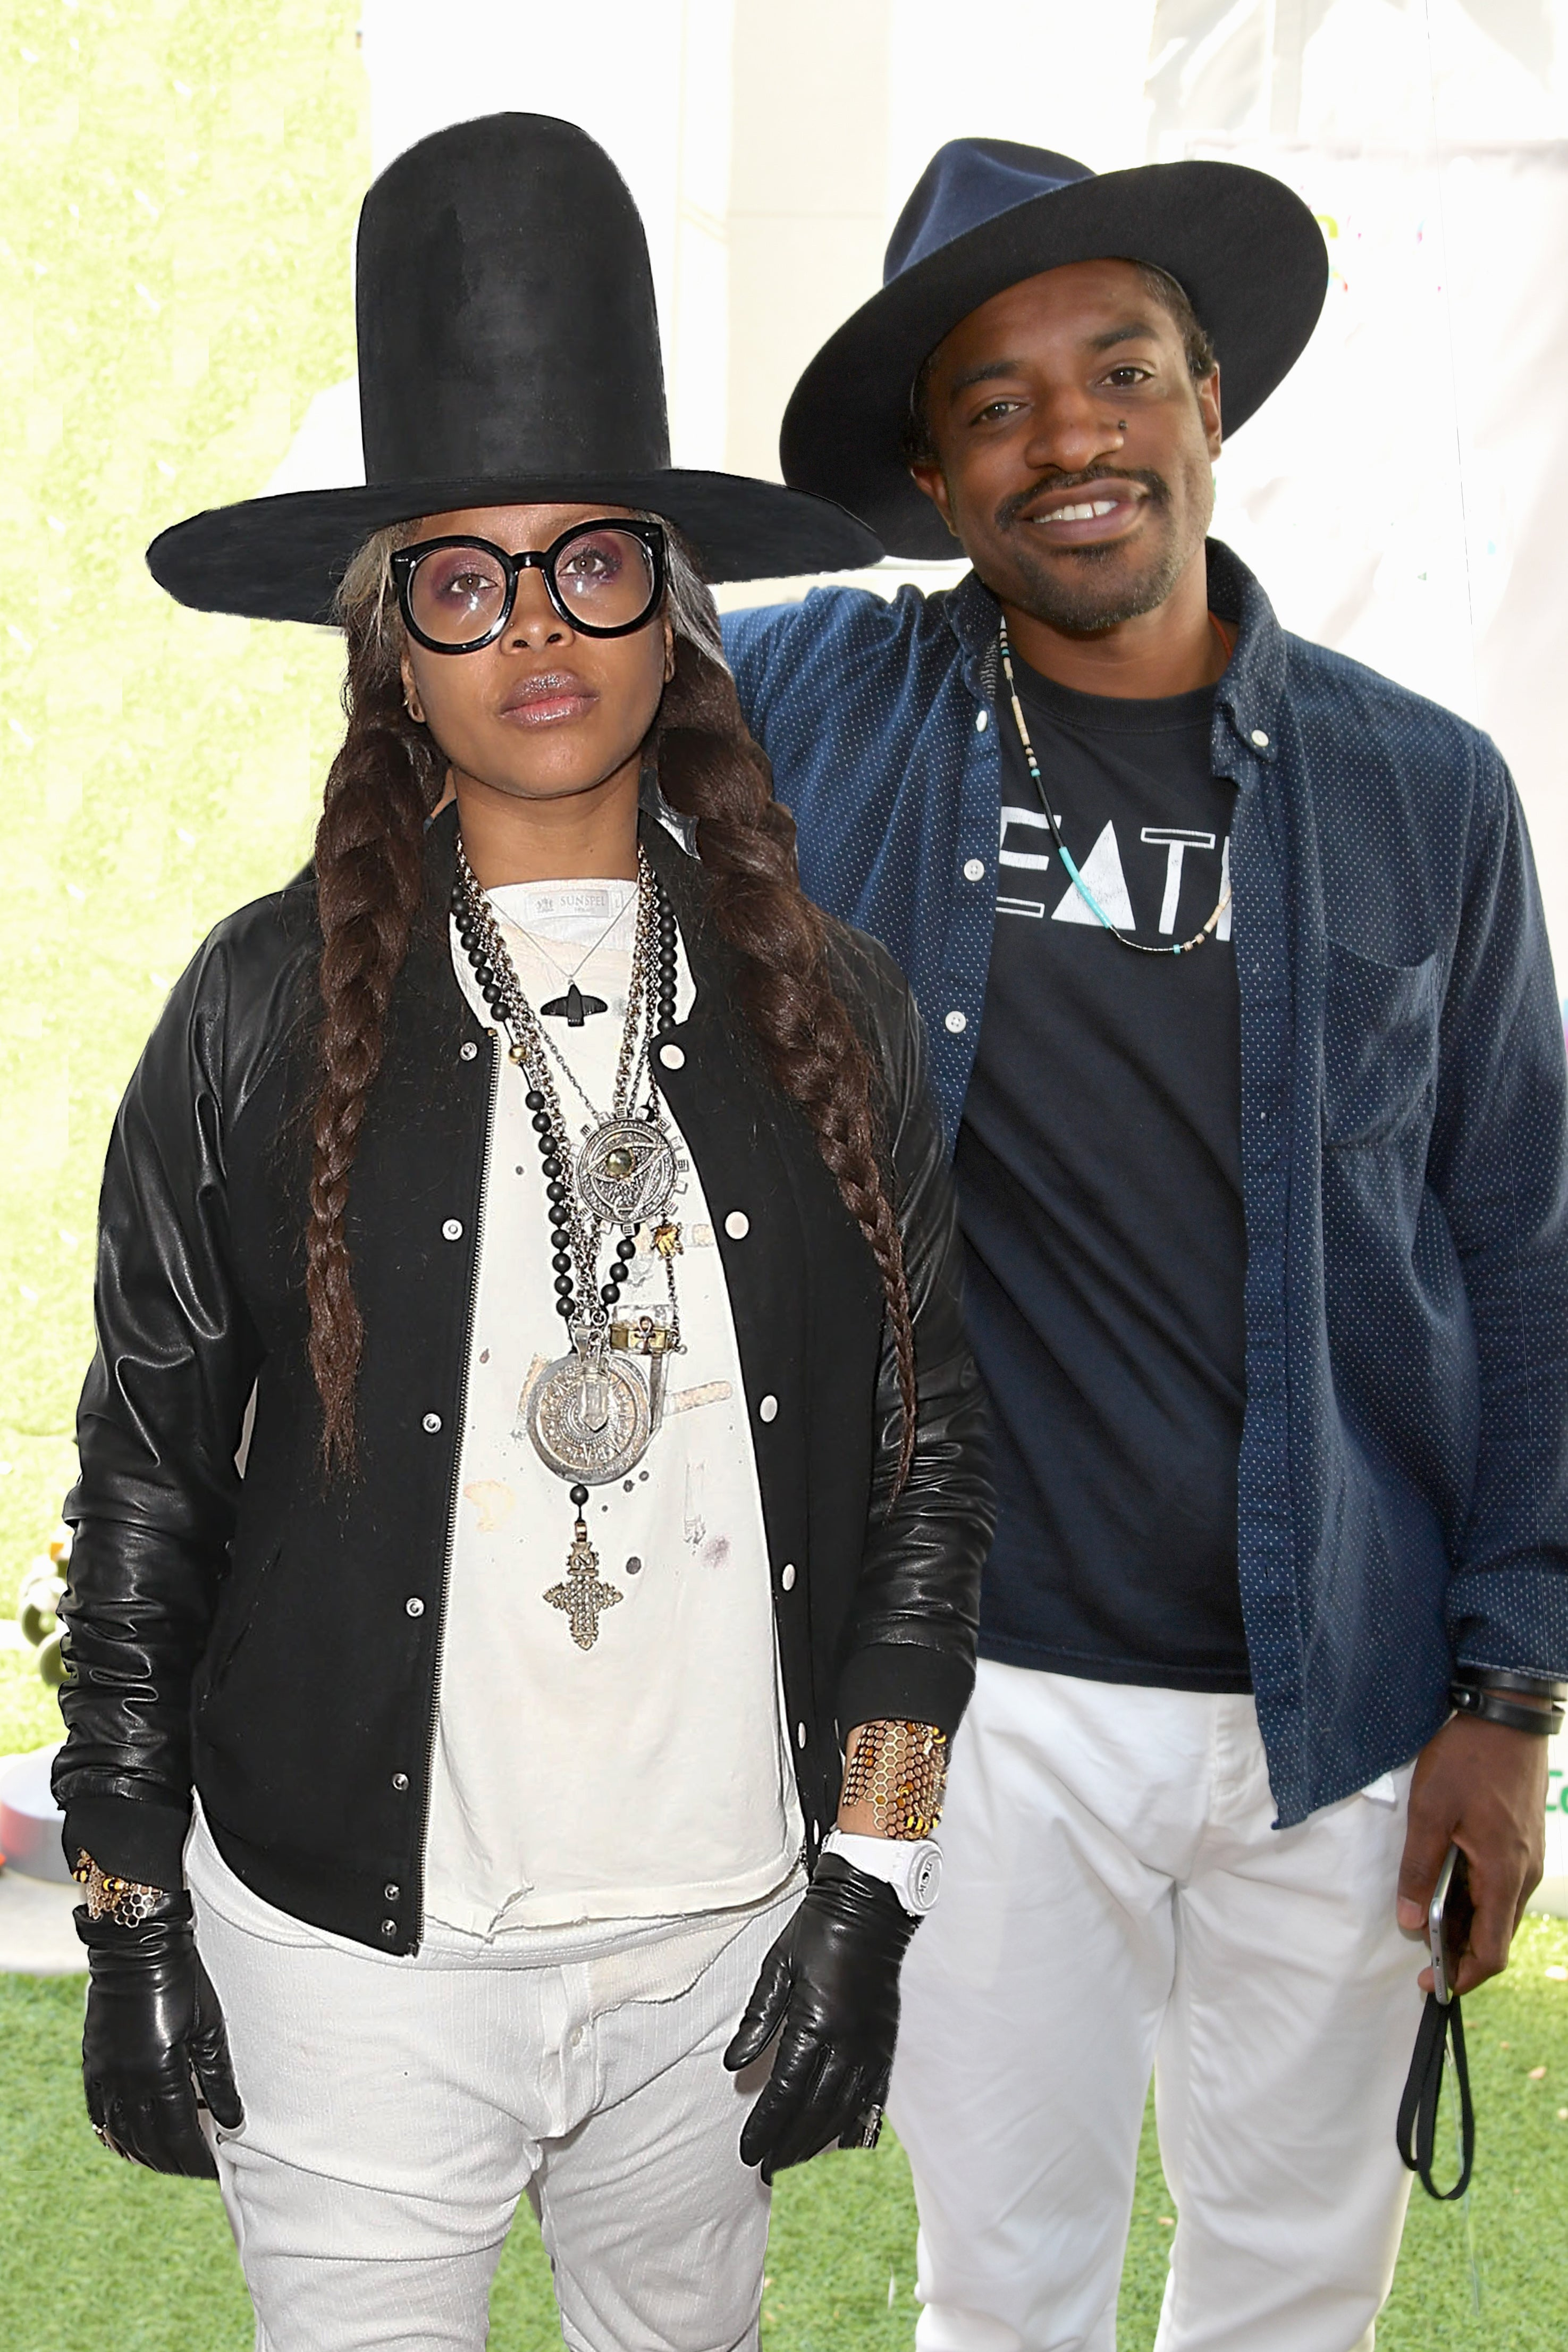 Erykah Badu and André 3000 Pose With Son Seven and Make Family Photo Magic